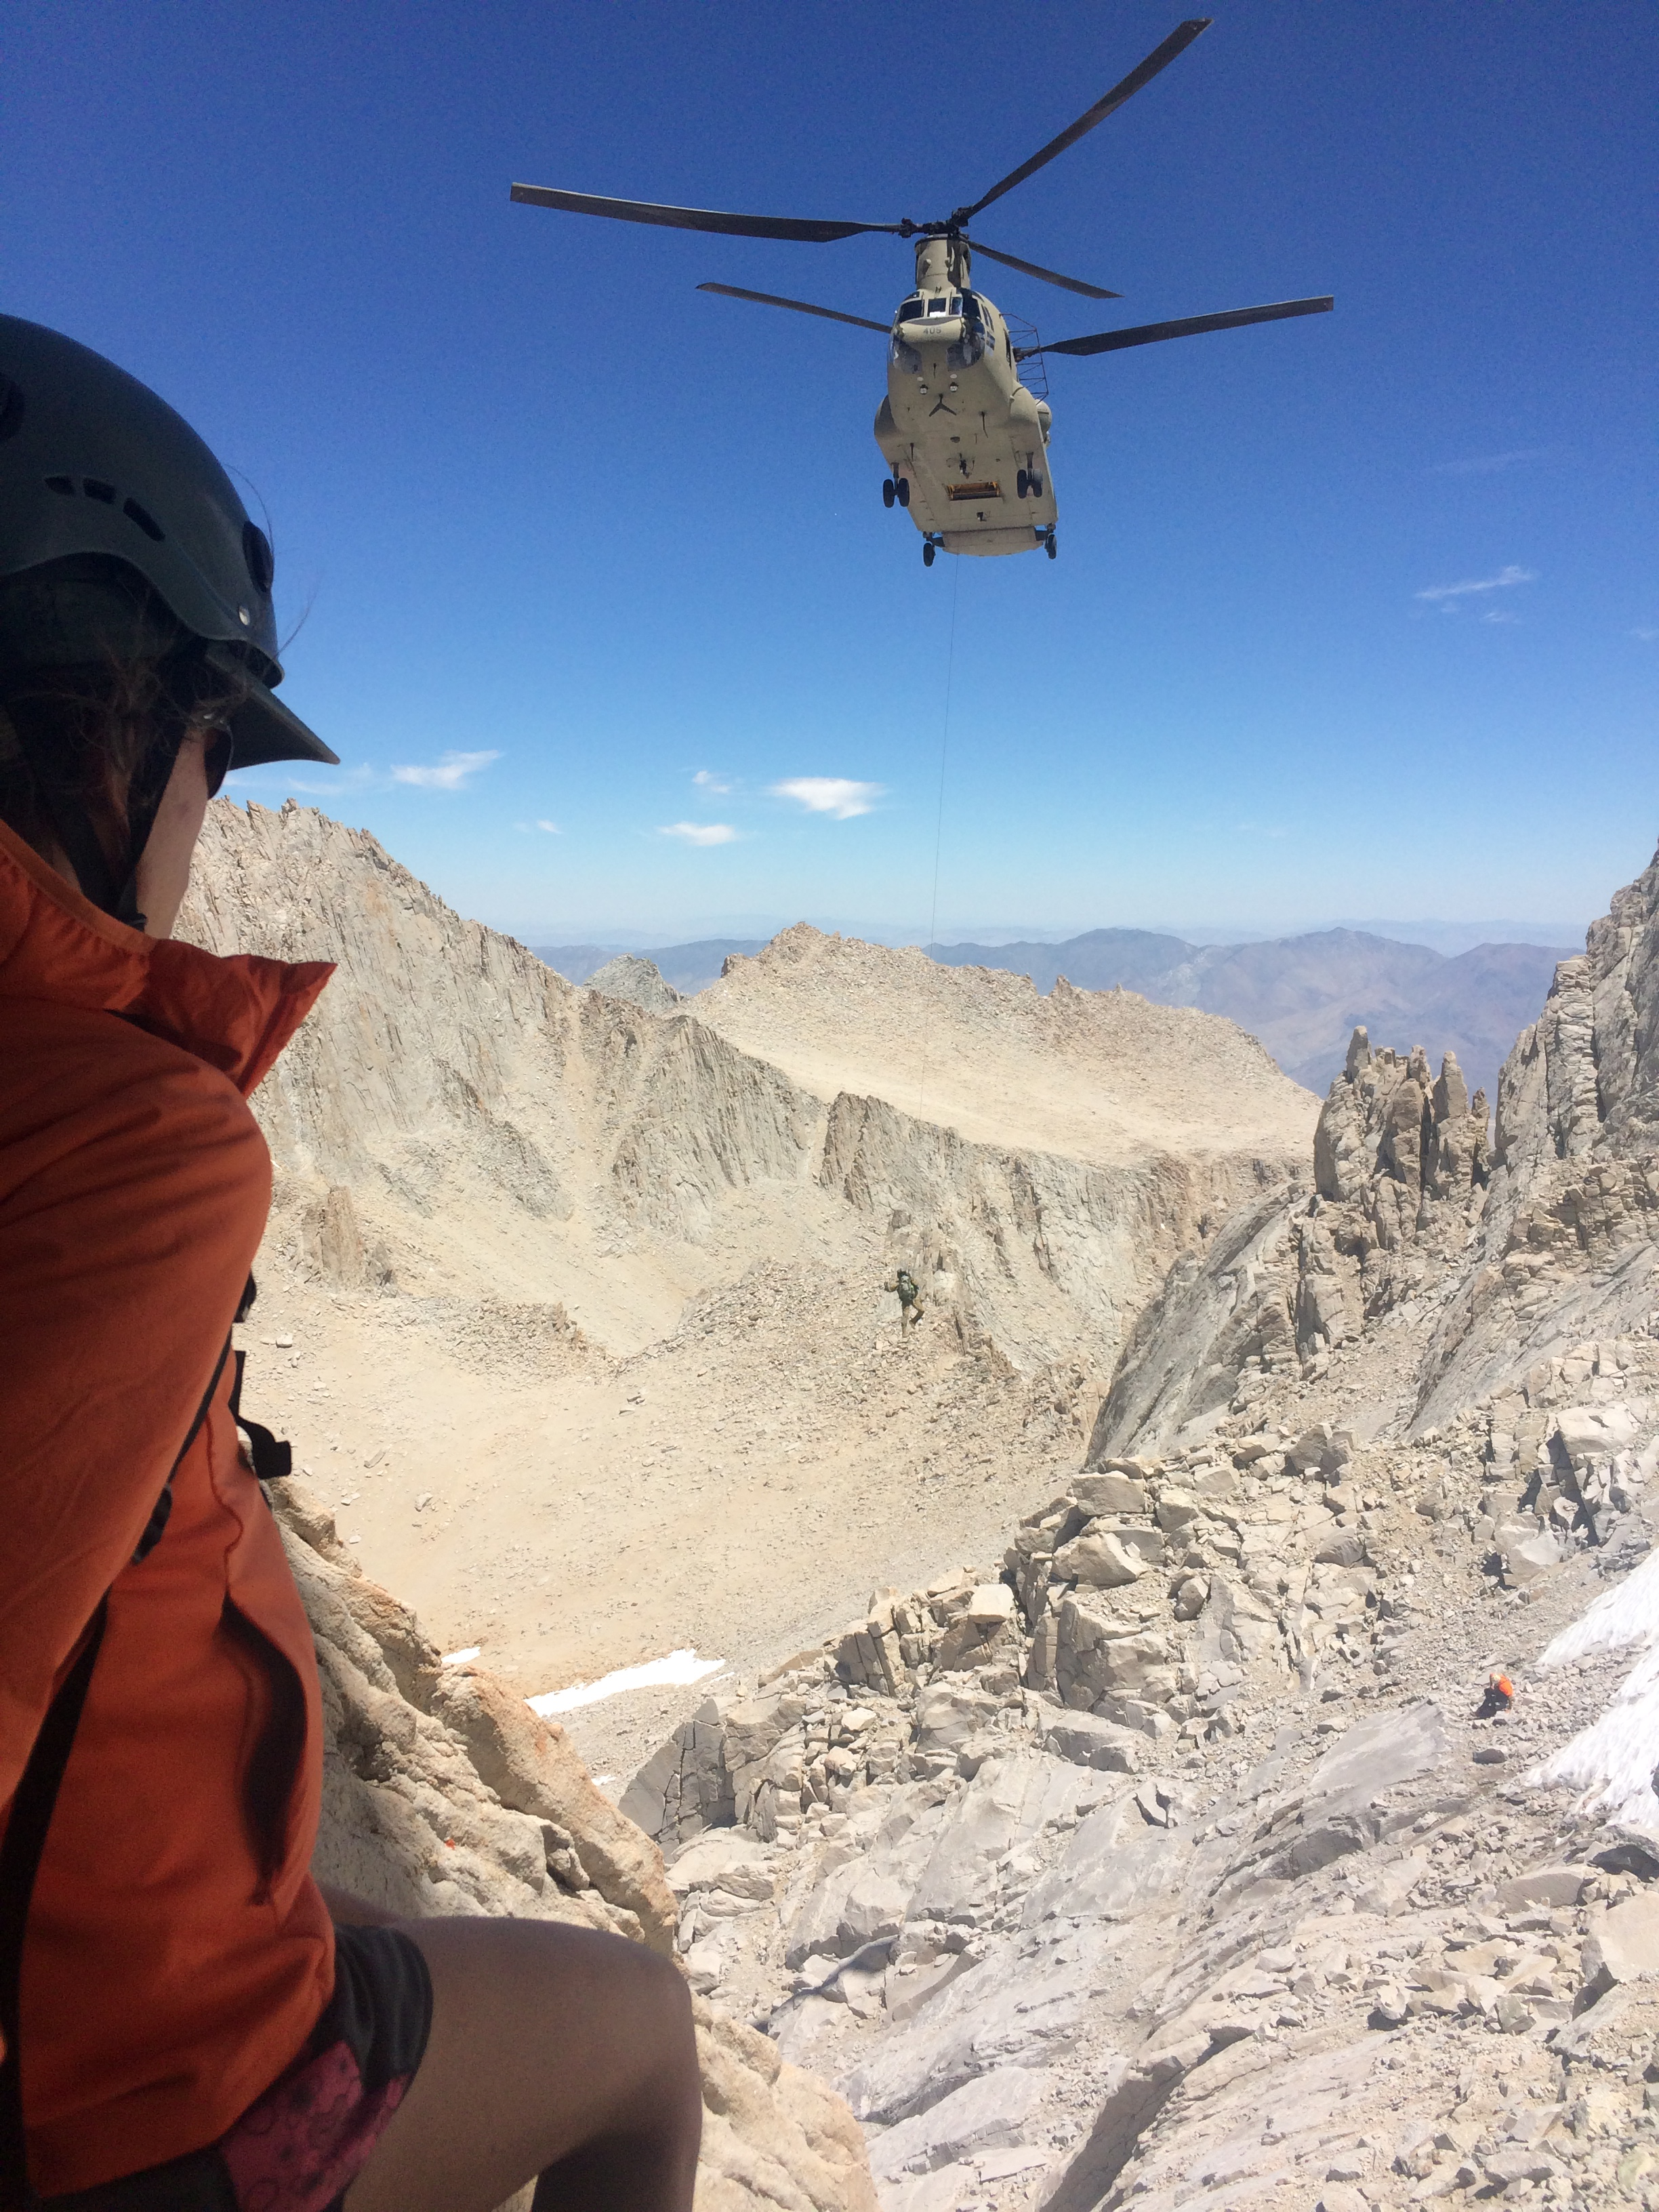 The search for missing hiker John Lee continues. This photo shows a searcher on a mountain in the foreground and a helicopter flying in the background. Photo courtesy of Inyo County Search and Rescue.